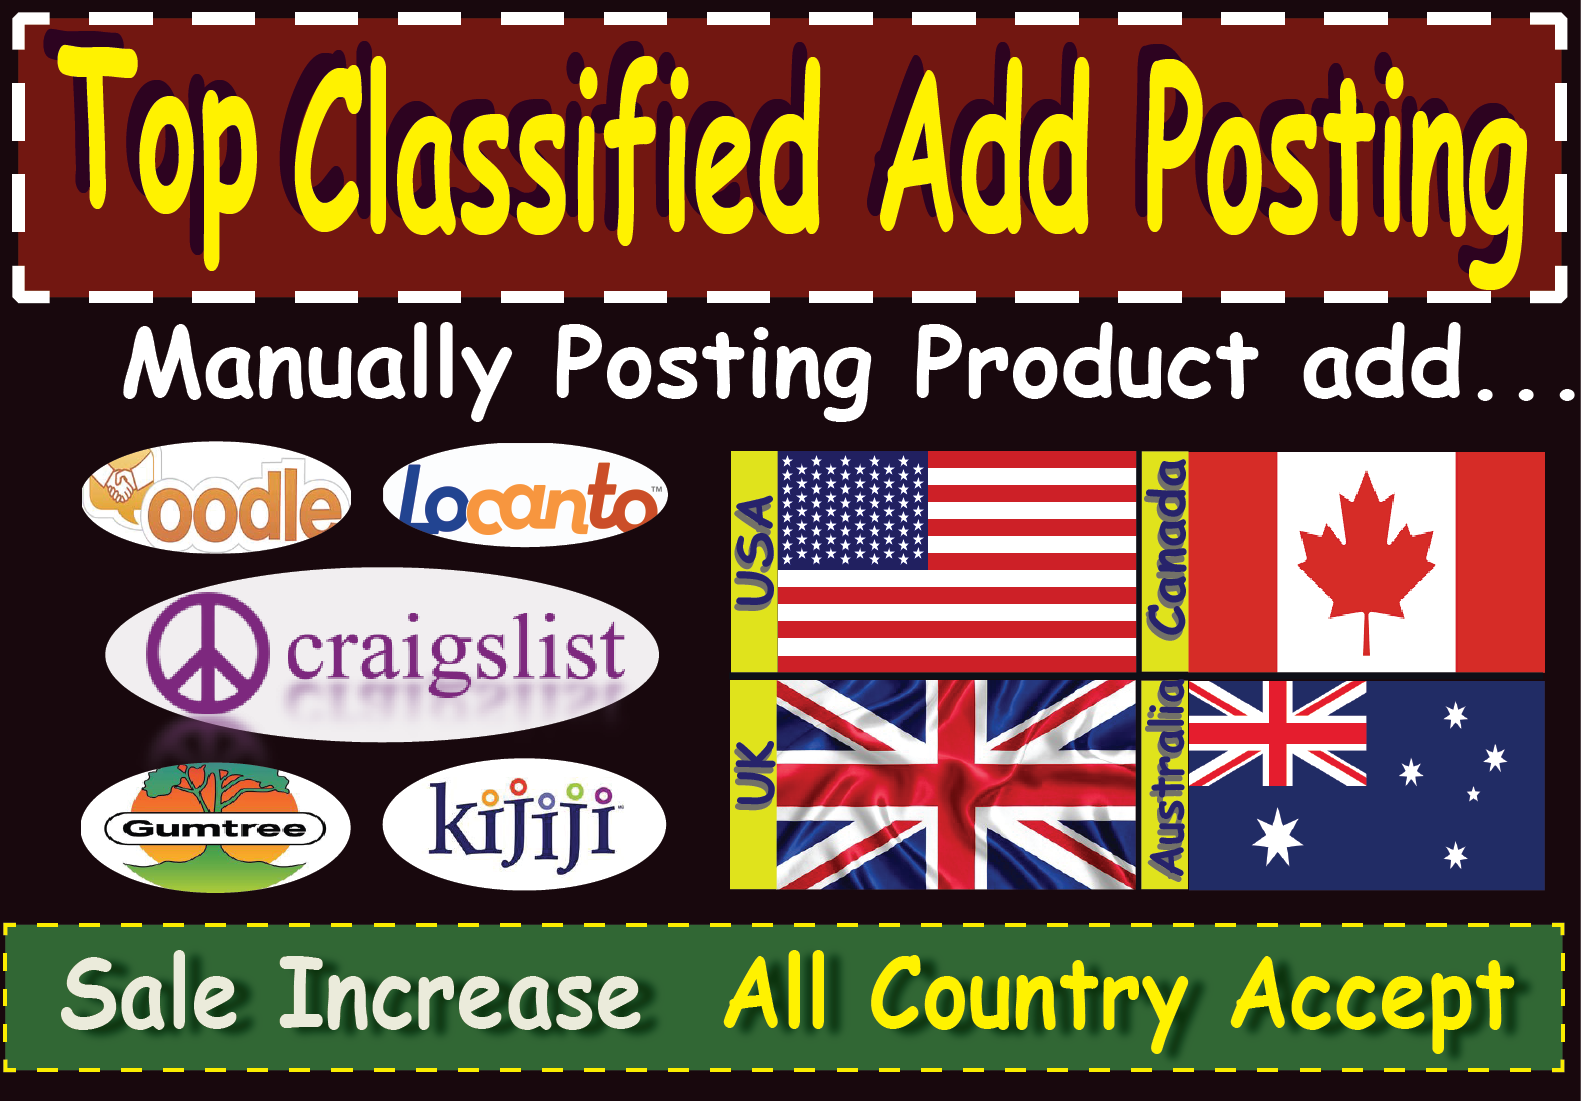 Post your ads by 15 top classified site promote your product for increase sale